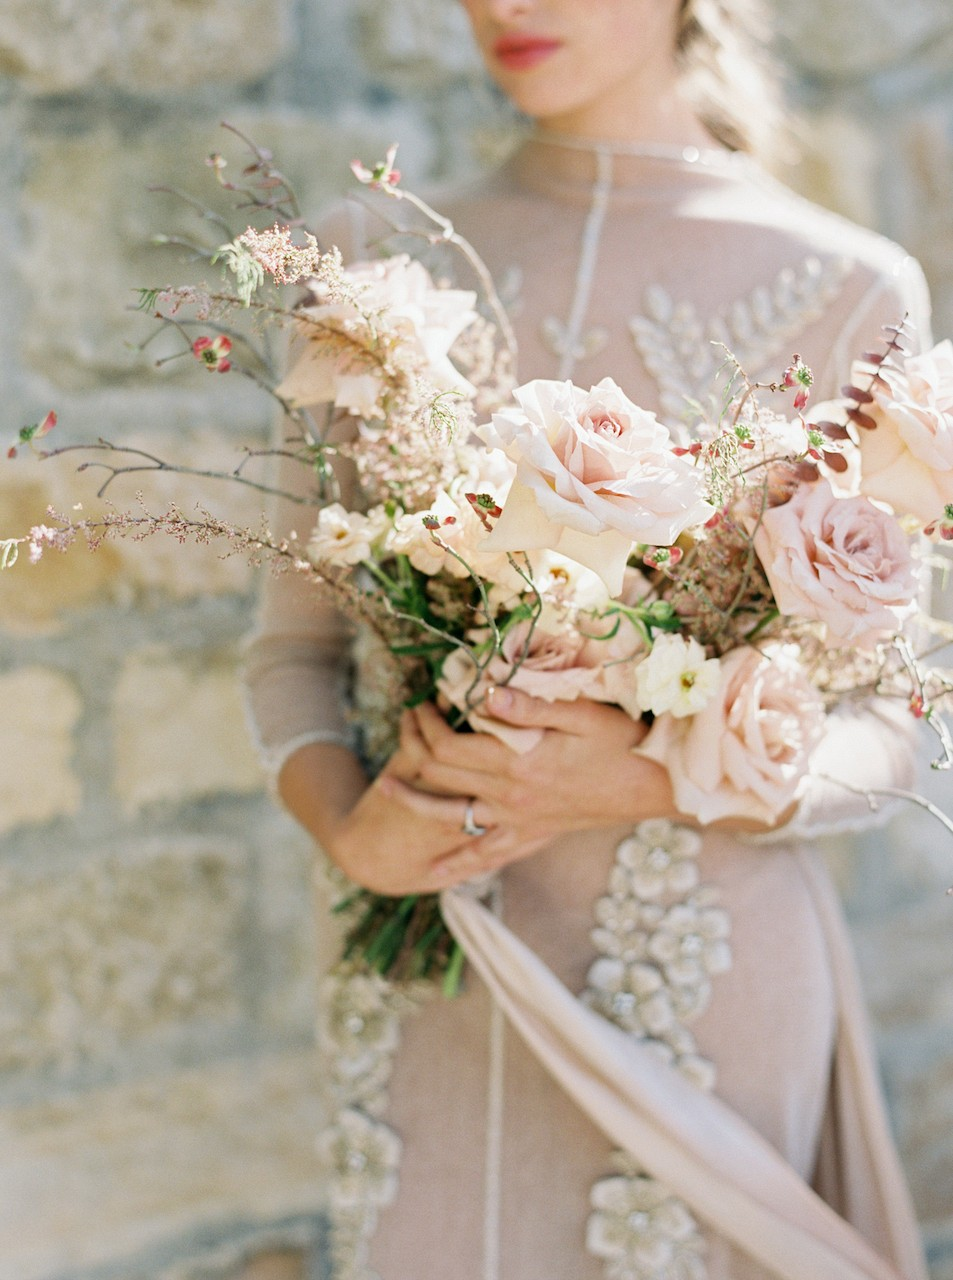 Wedding bouquets with earthy tones